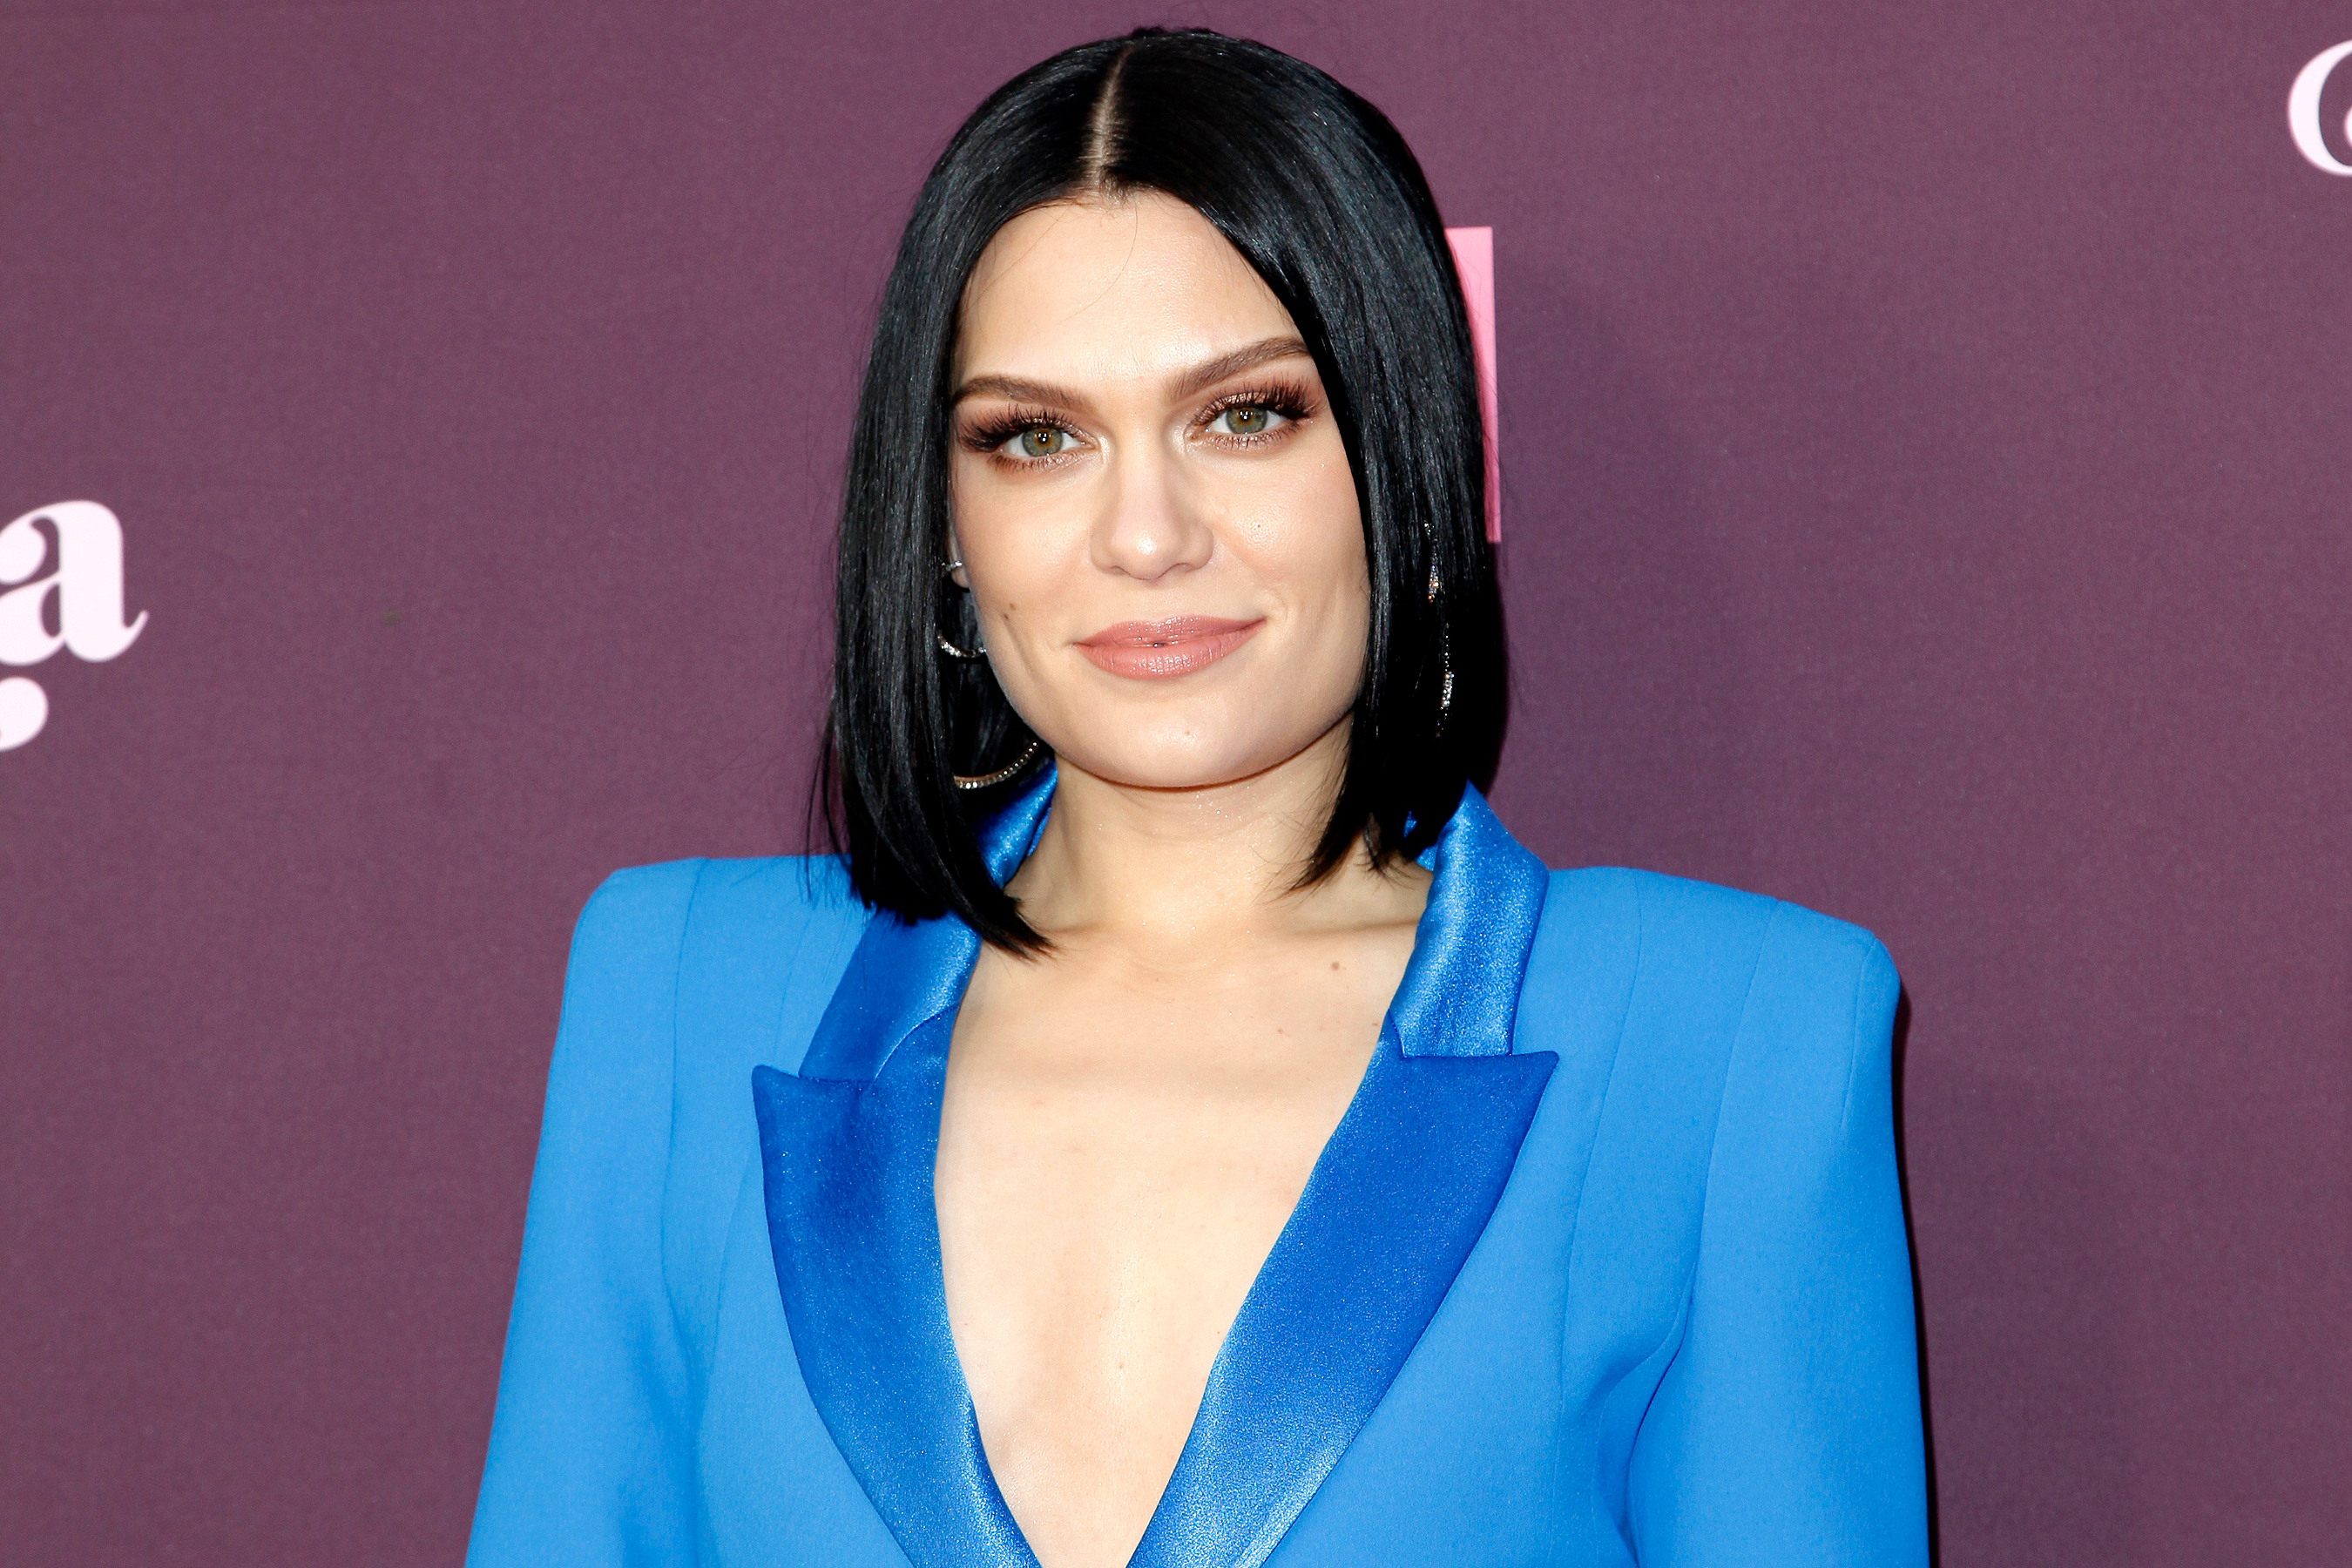 Jessie J's powerful cover of 'On My Own' will make your jaw drop